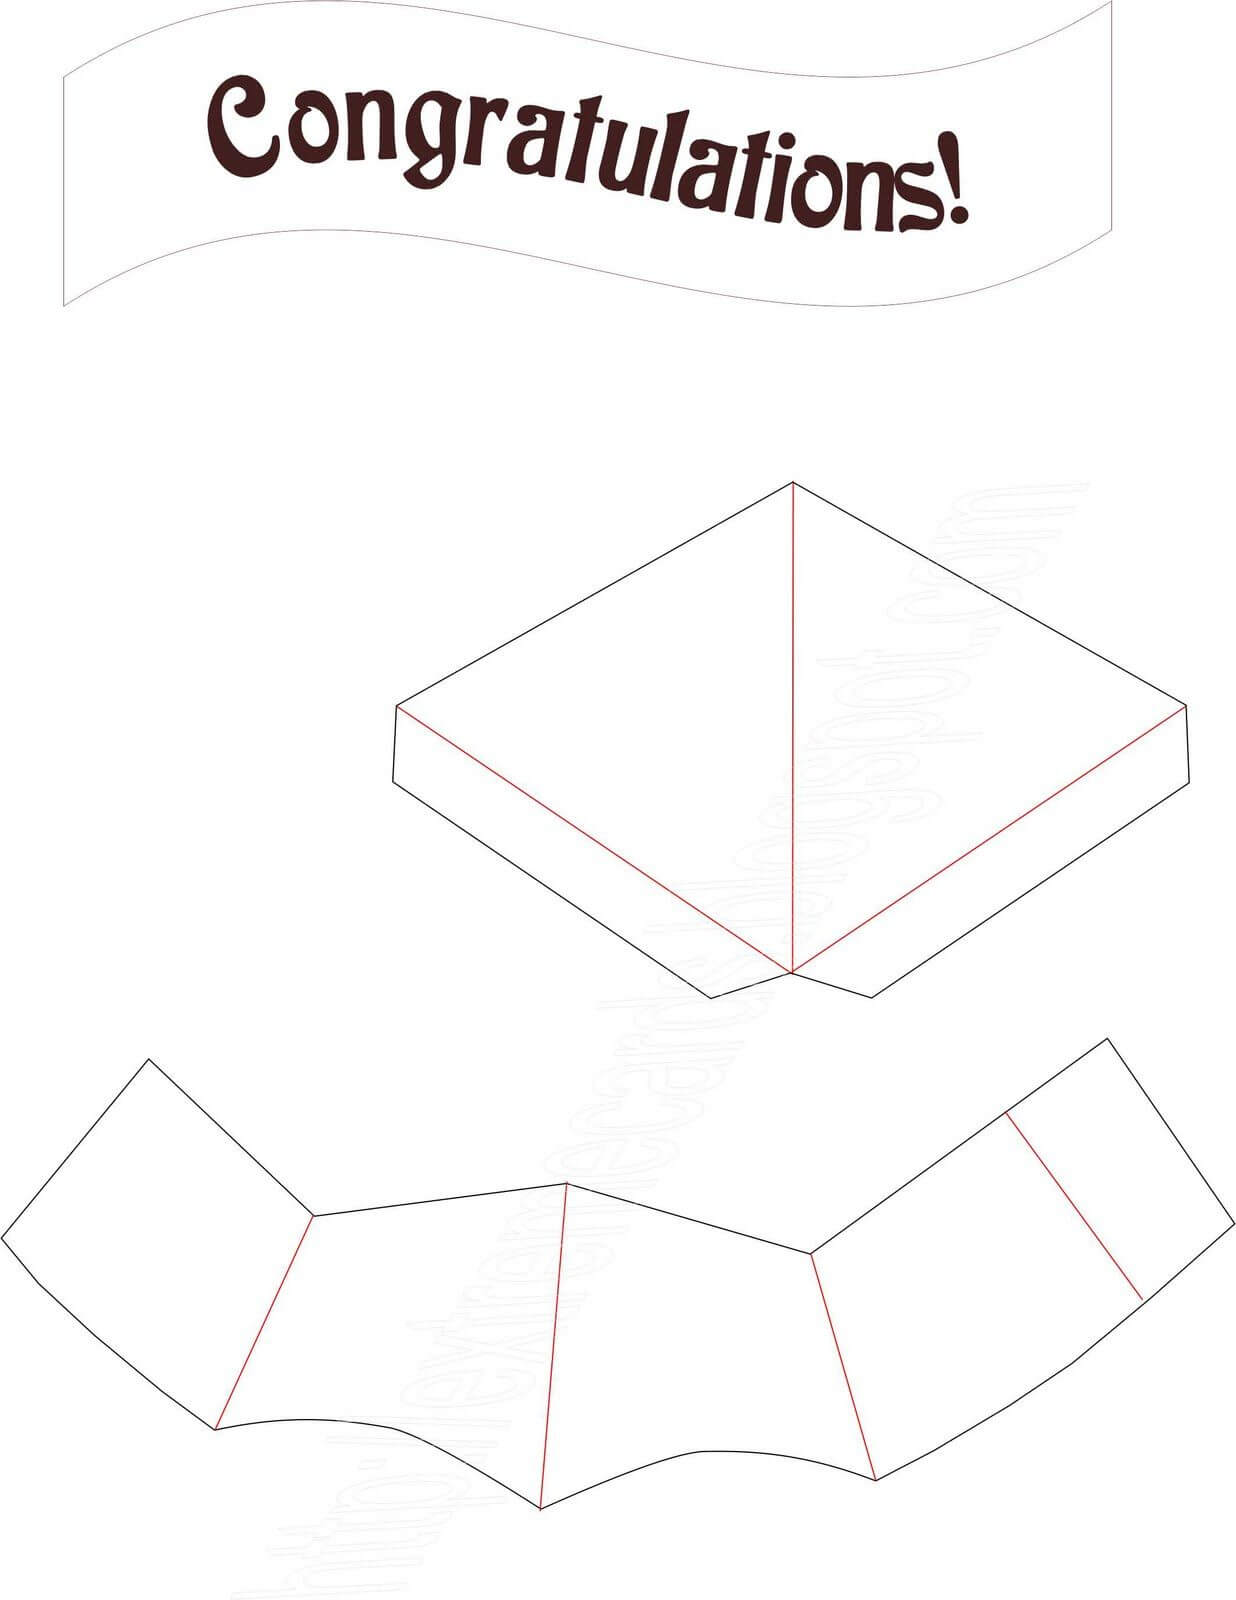 Extreme Cards And Papercrafting: Graduation Cap Pop Up Card Within Graduation Pop Up Card Template